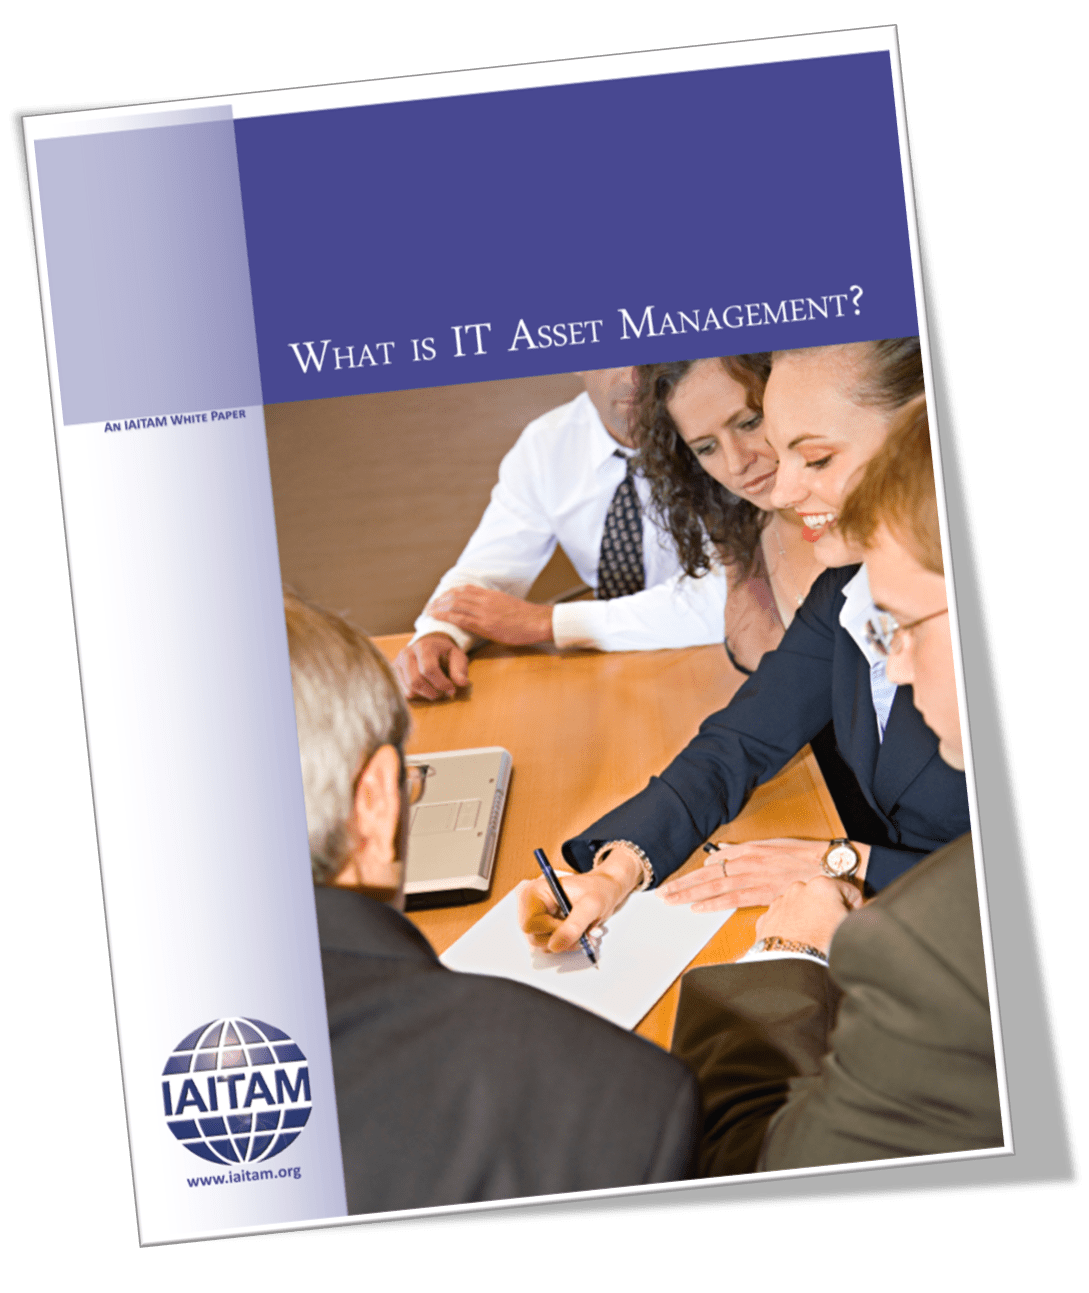 What is IT Asset Management